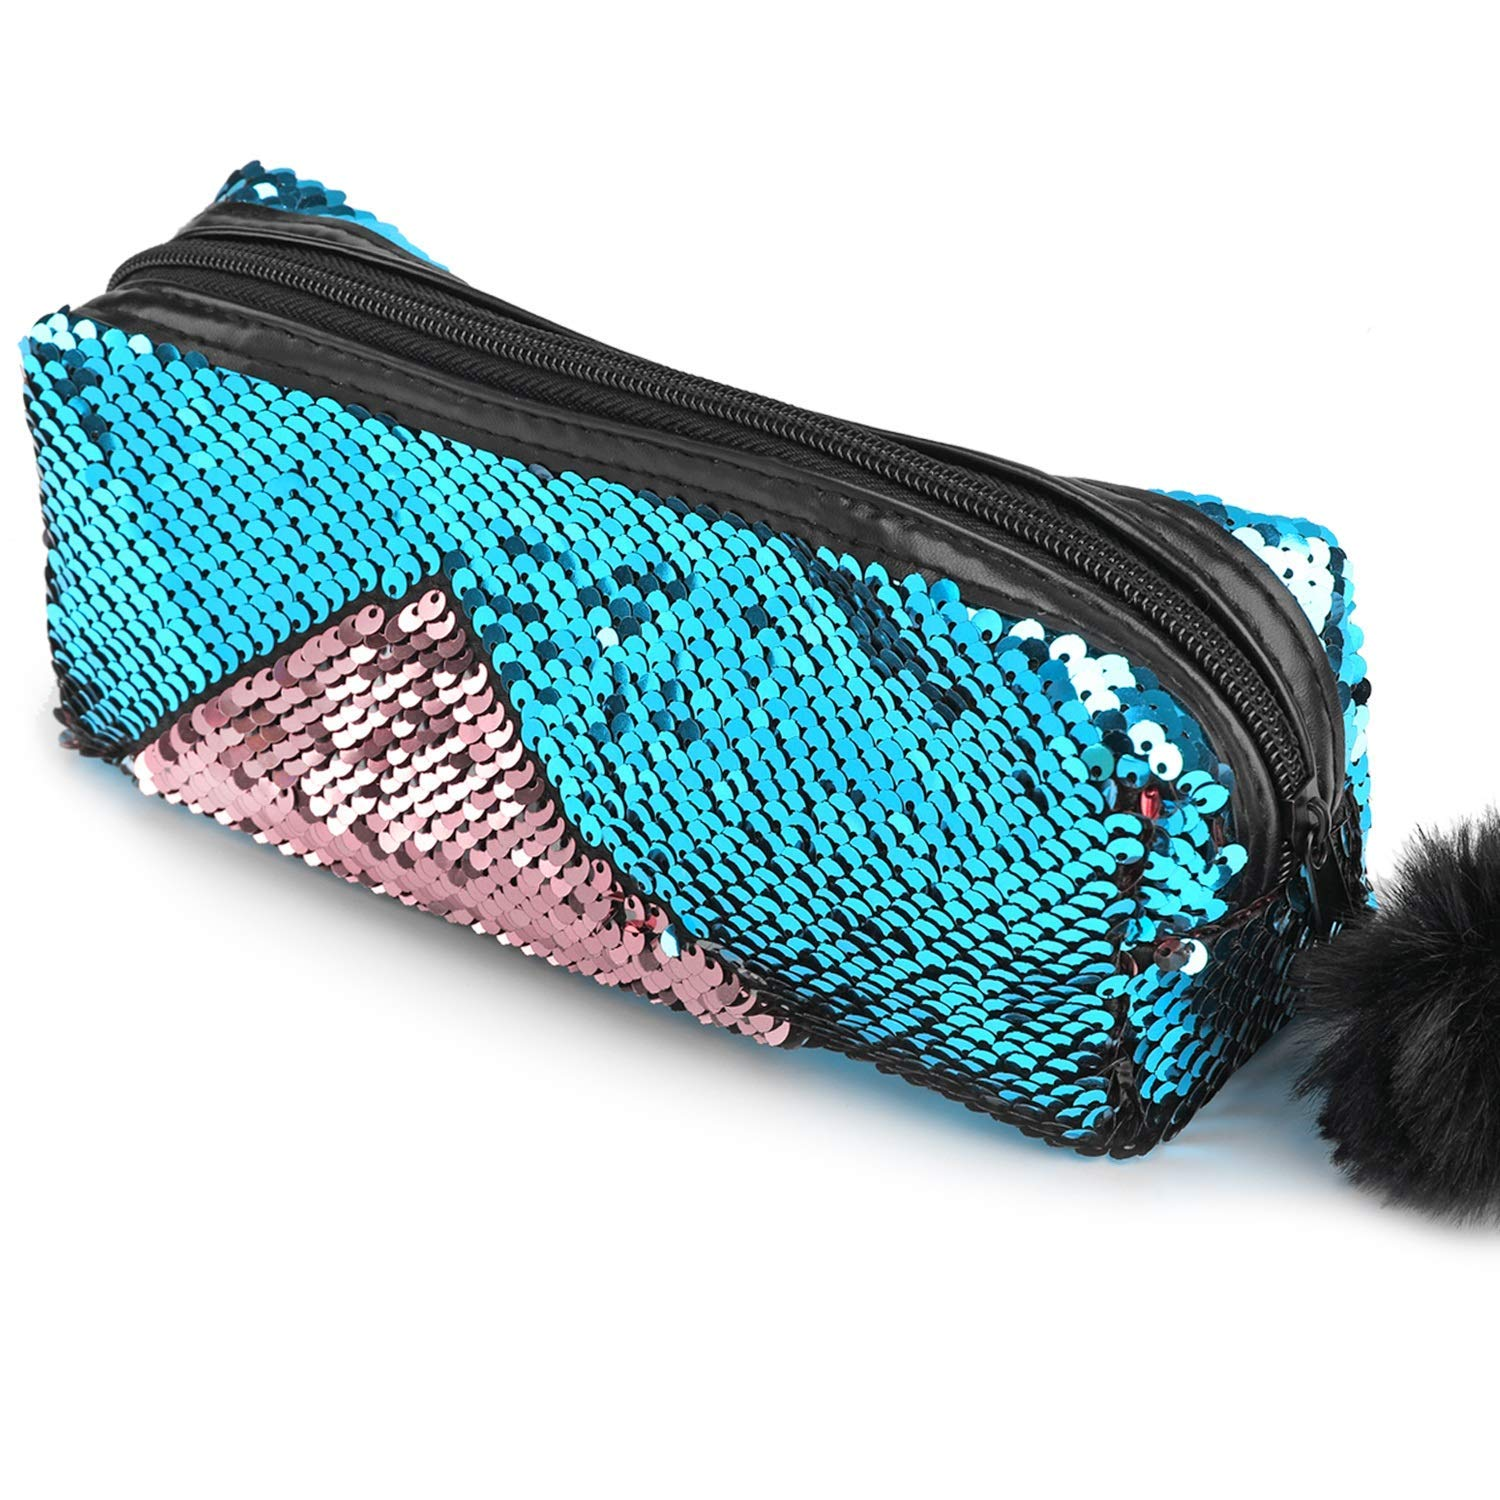 Glitter Cosmetic Bag Mermaid Spiral Reversible Sequins Portable Double Color Students Pencil Case for Girls Women Handbag Purse Make Up Pouch with Pompon Zip Closure(Blue+Pink)